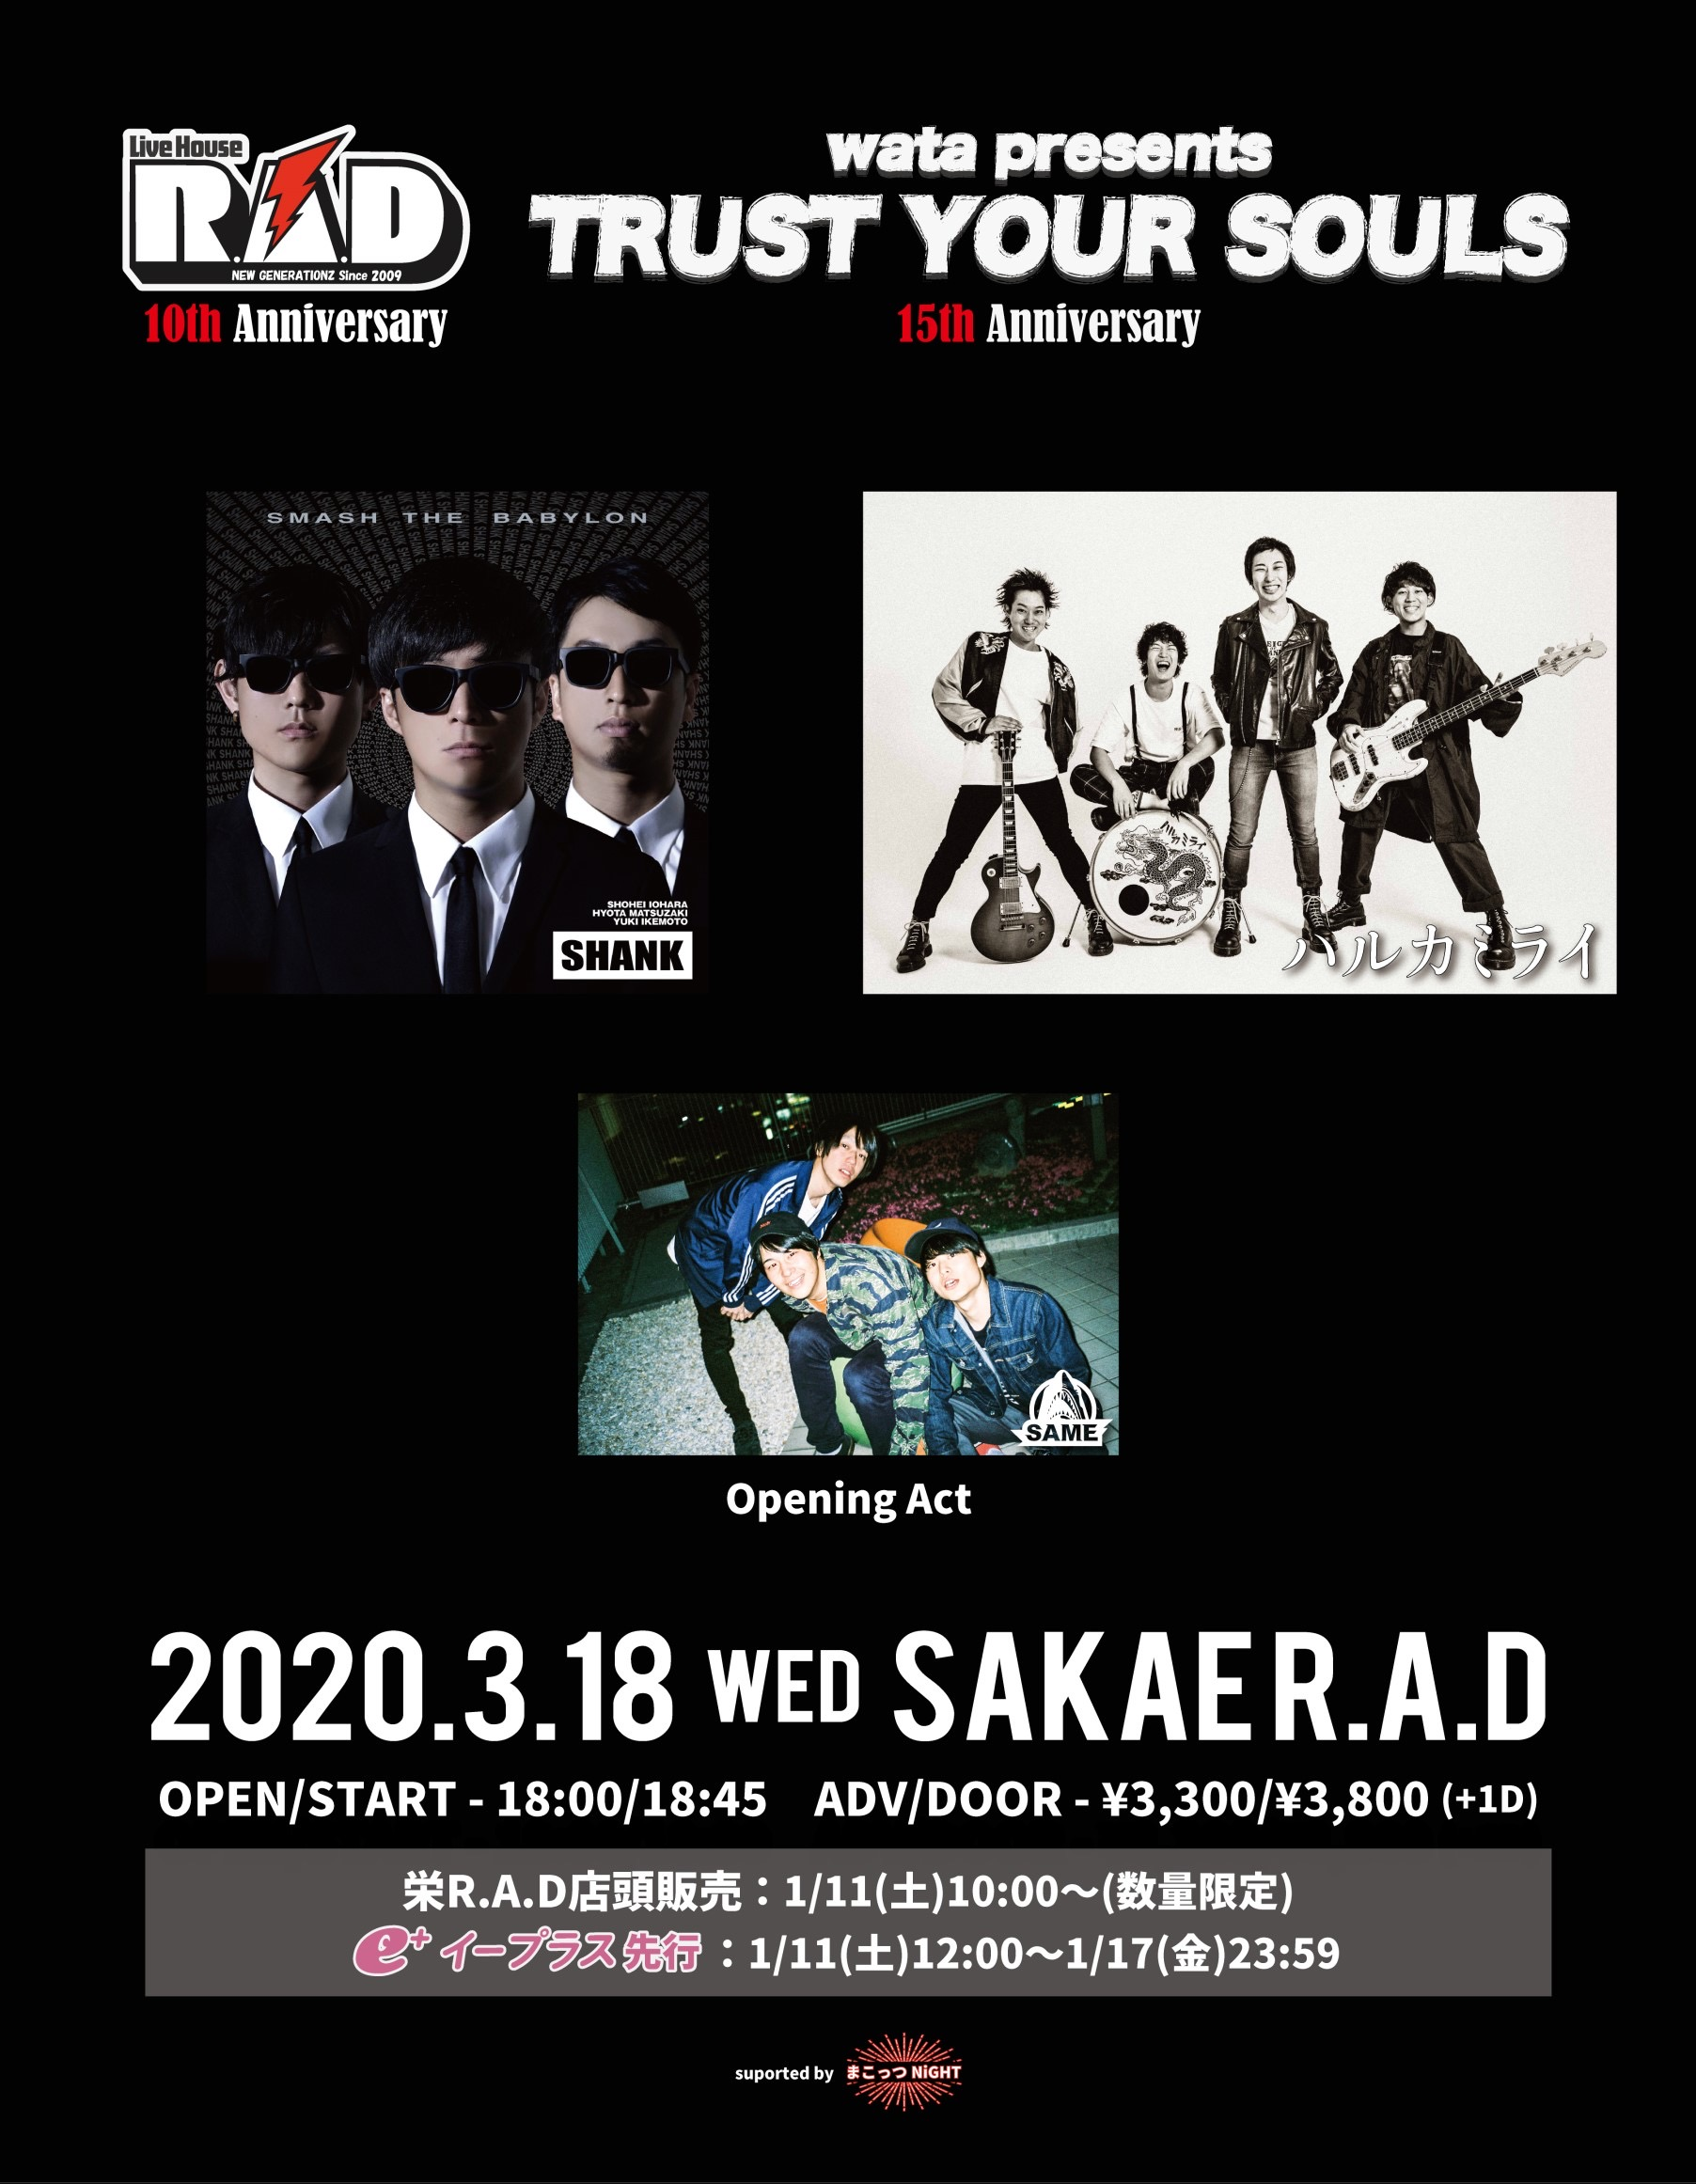 wata presents TRUST YOUR SOULS 15th Anniversary